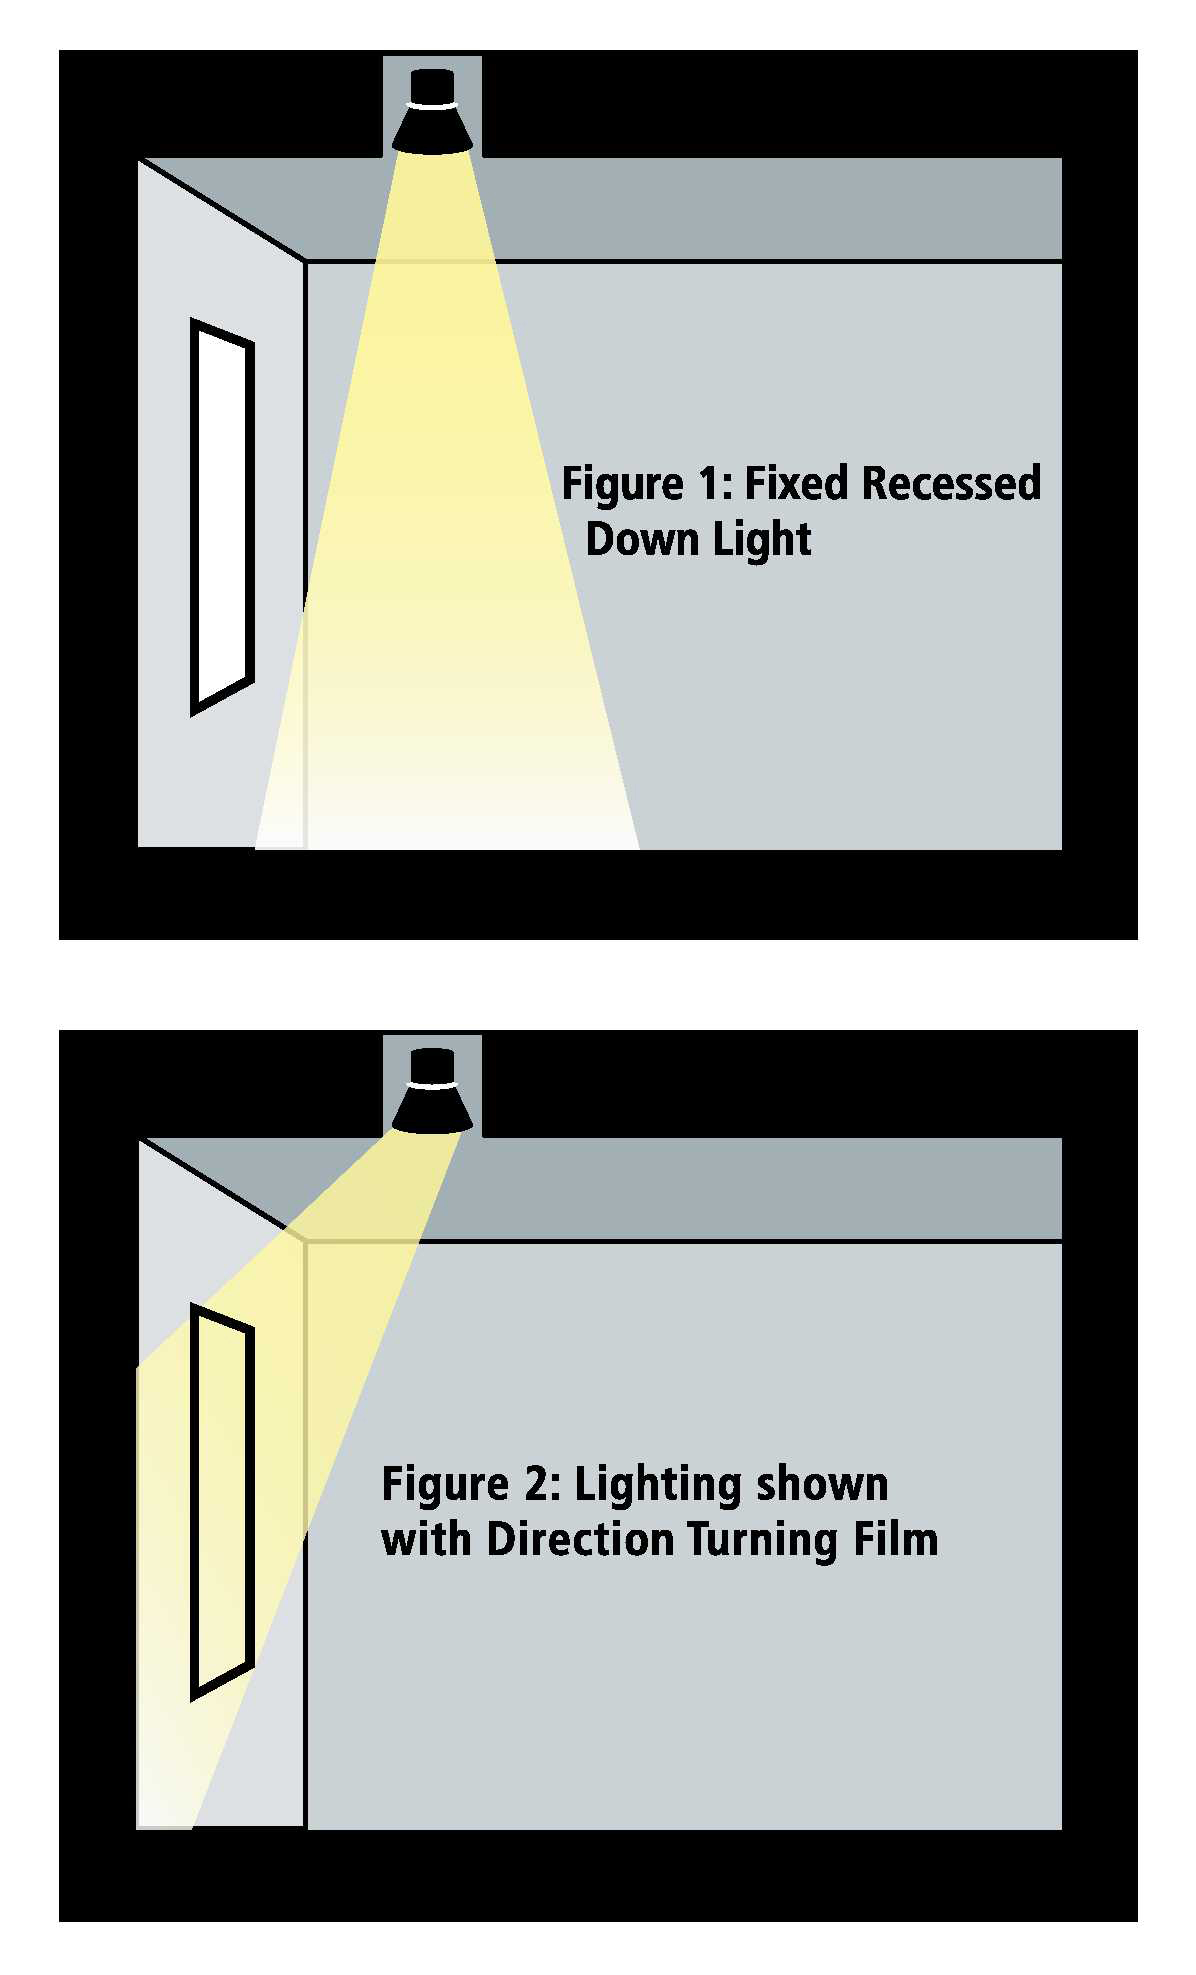 direction turning film on light fixture